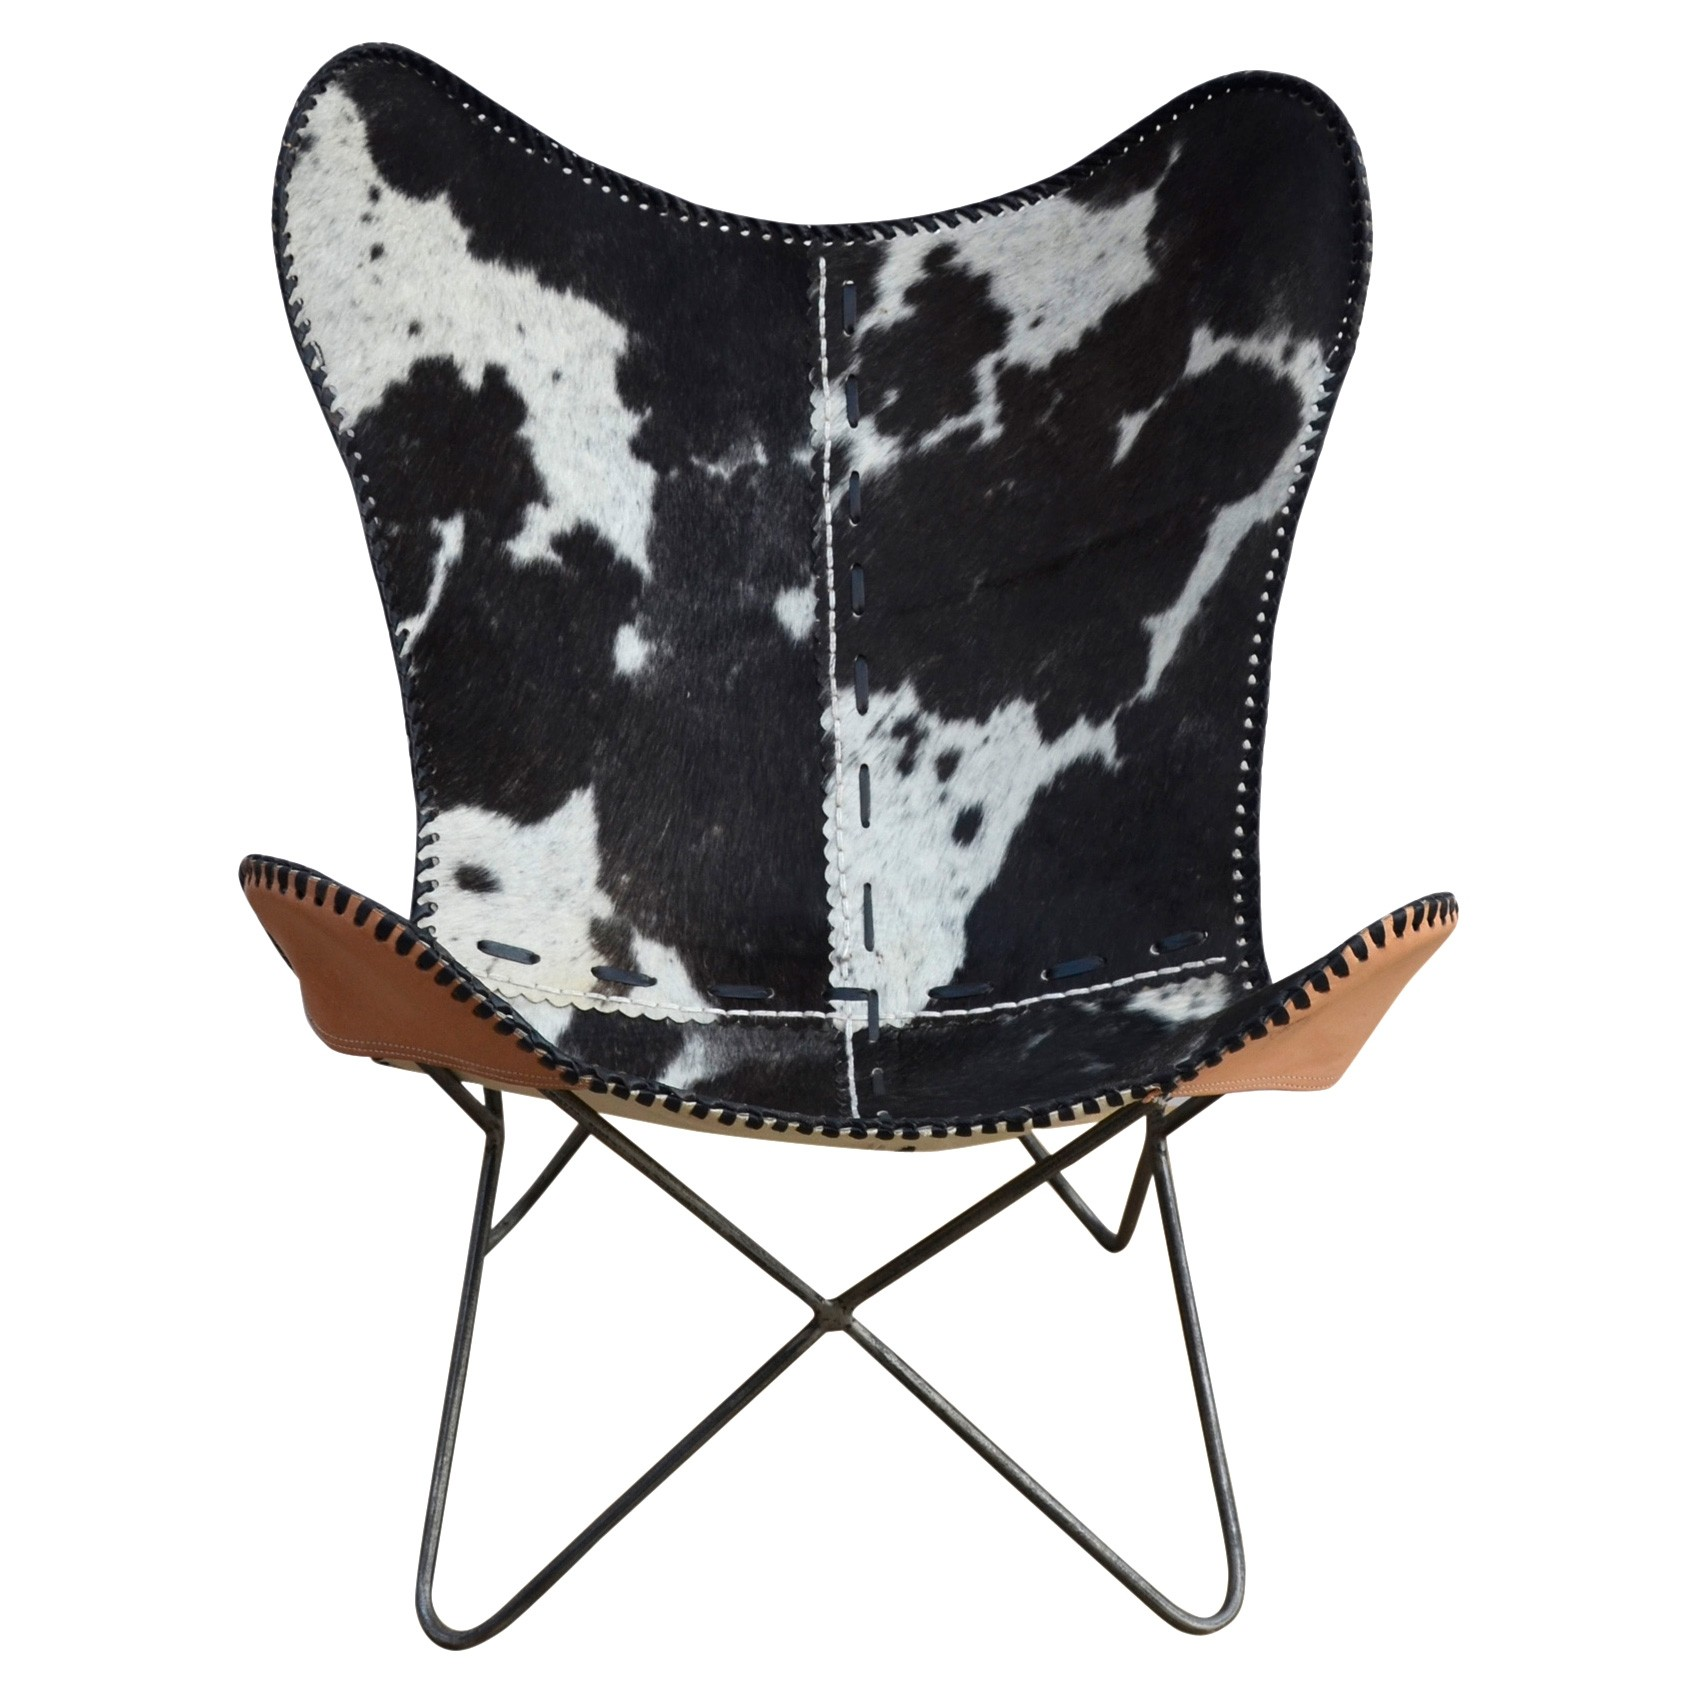 Morrow Handcrafted Diamond Check Cowhide Butterfly Chair, Black